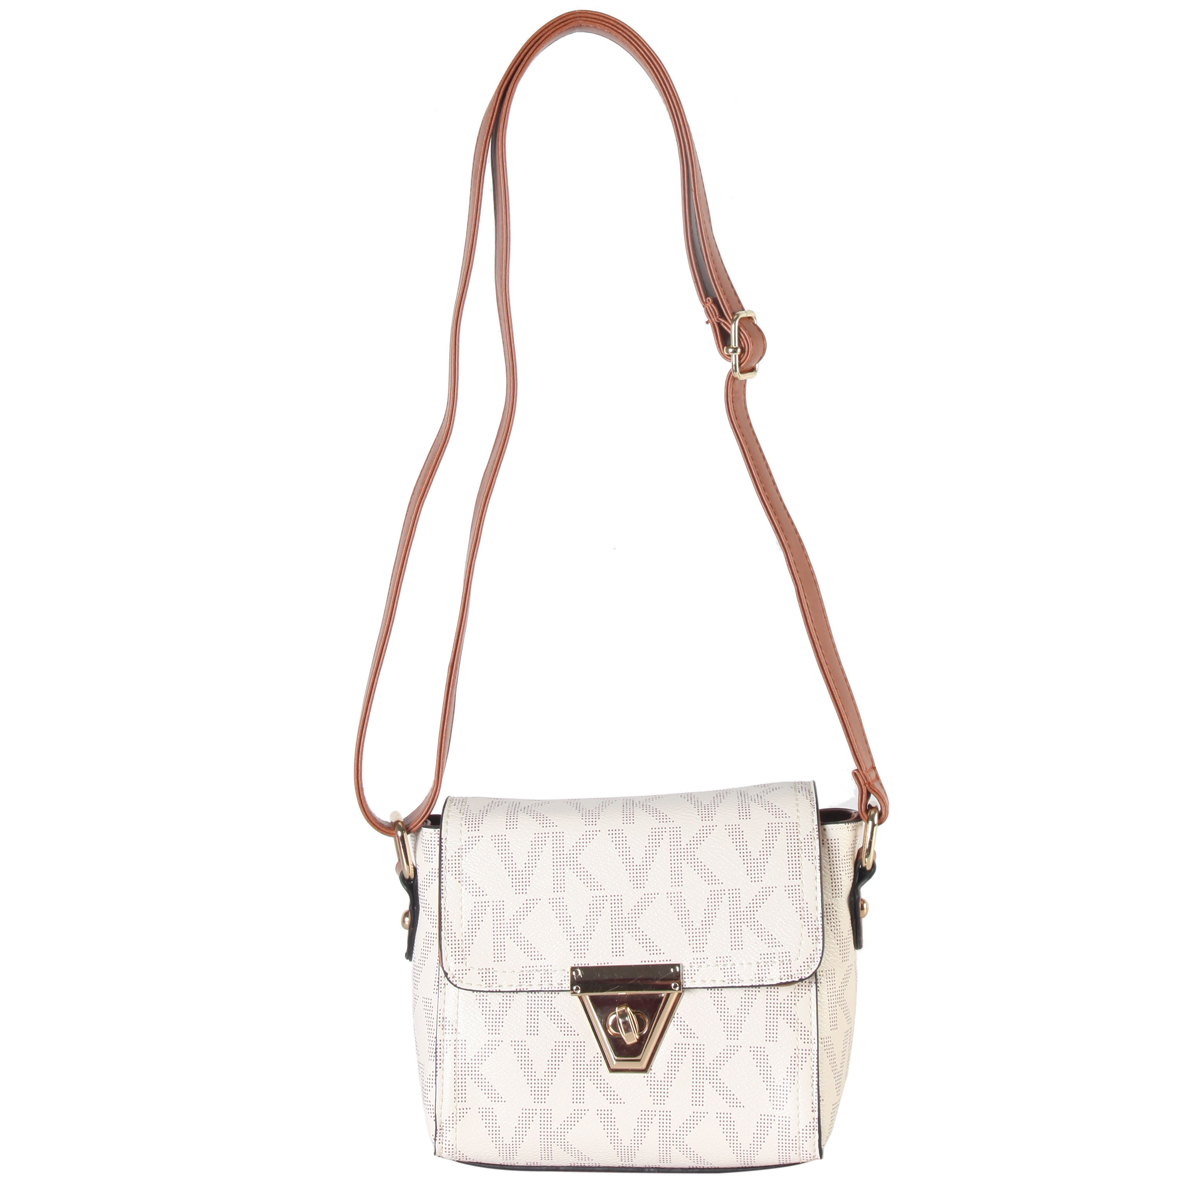 Monogram logo Front flap twist lock Messenger/crossbody Bag